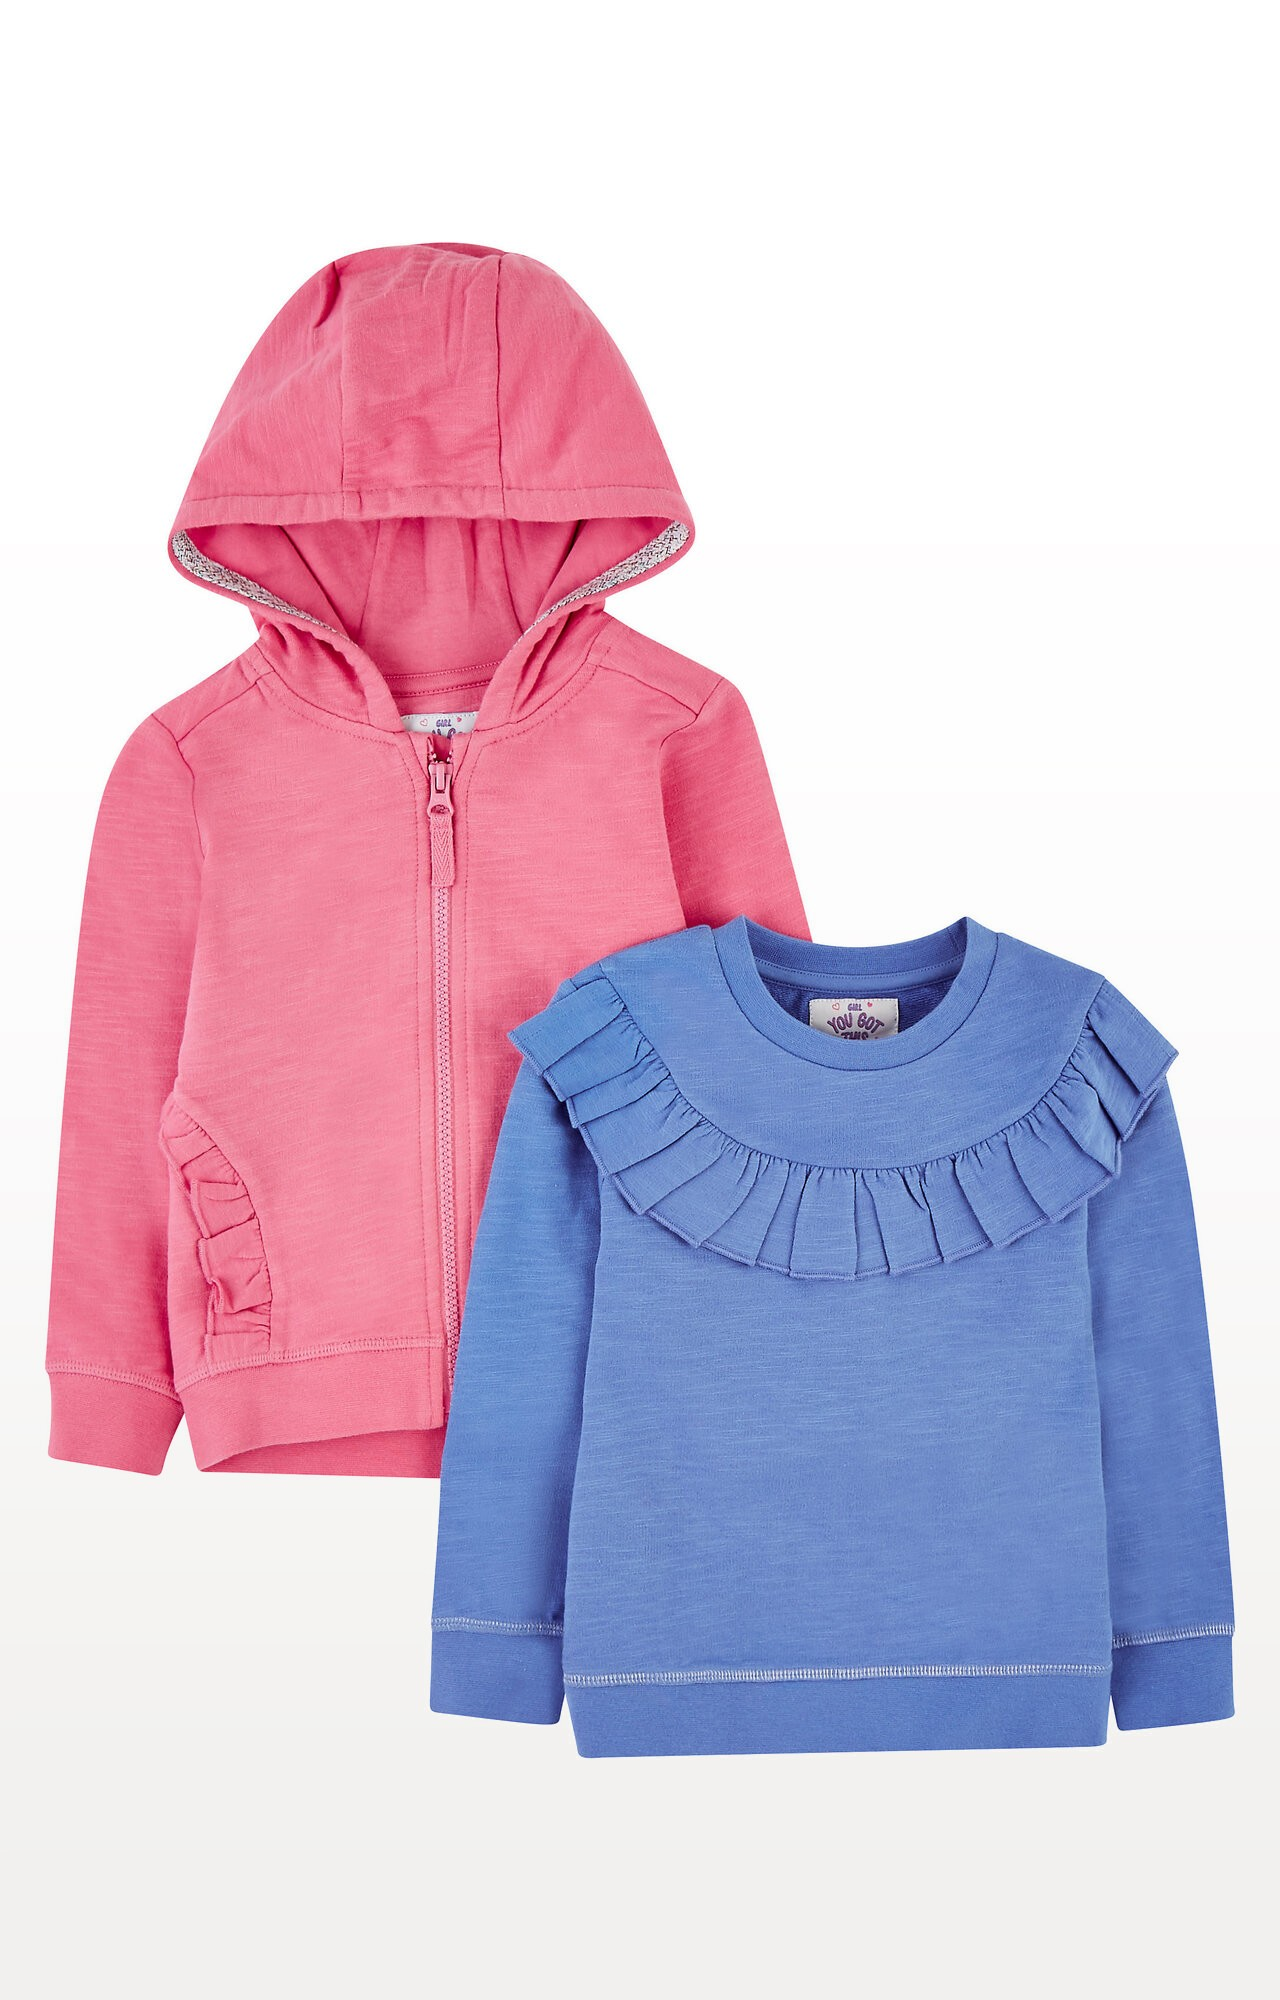 Mothercare   Blue Frill Sweat Top and Pink Frill Zip-Through Hoodie Set